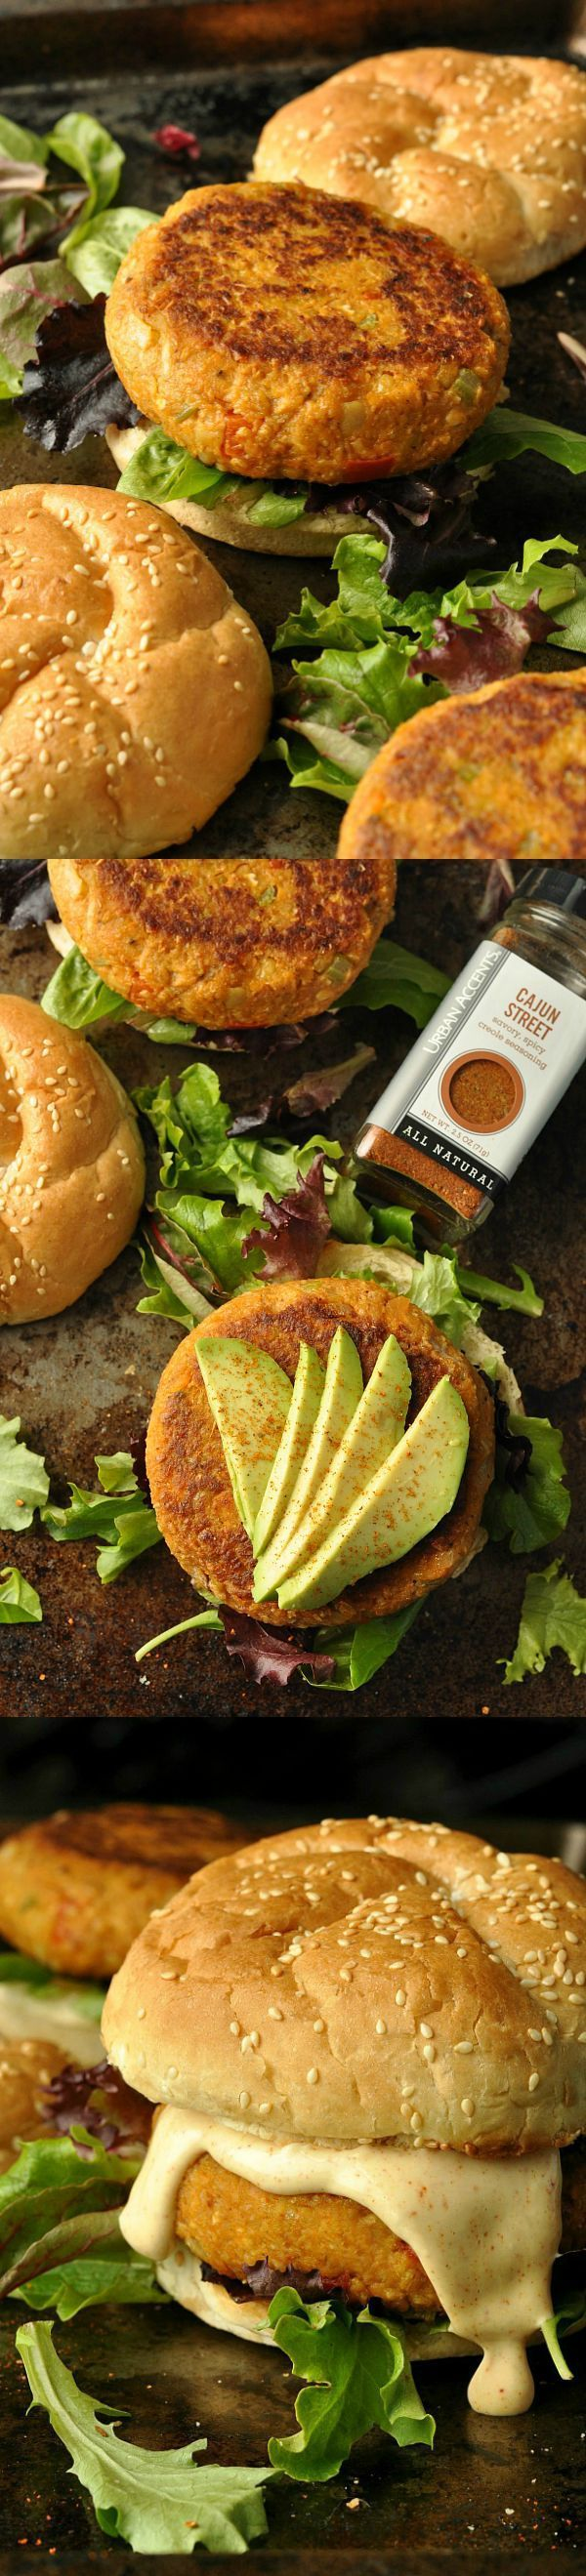 Cajun Chickpea and Sweet Potato Veggie Burgers :: These gluten-free vegan burgers are absolutely awesome! *use vegan mayo